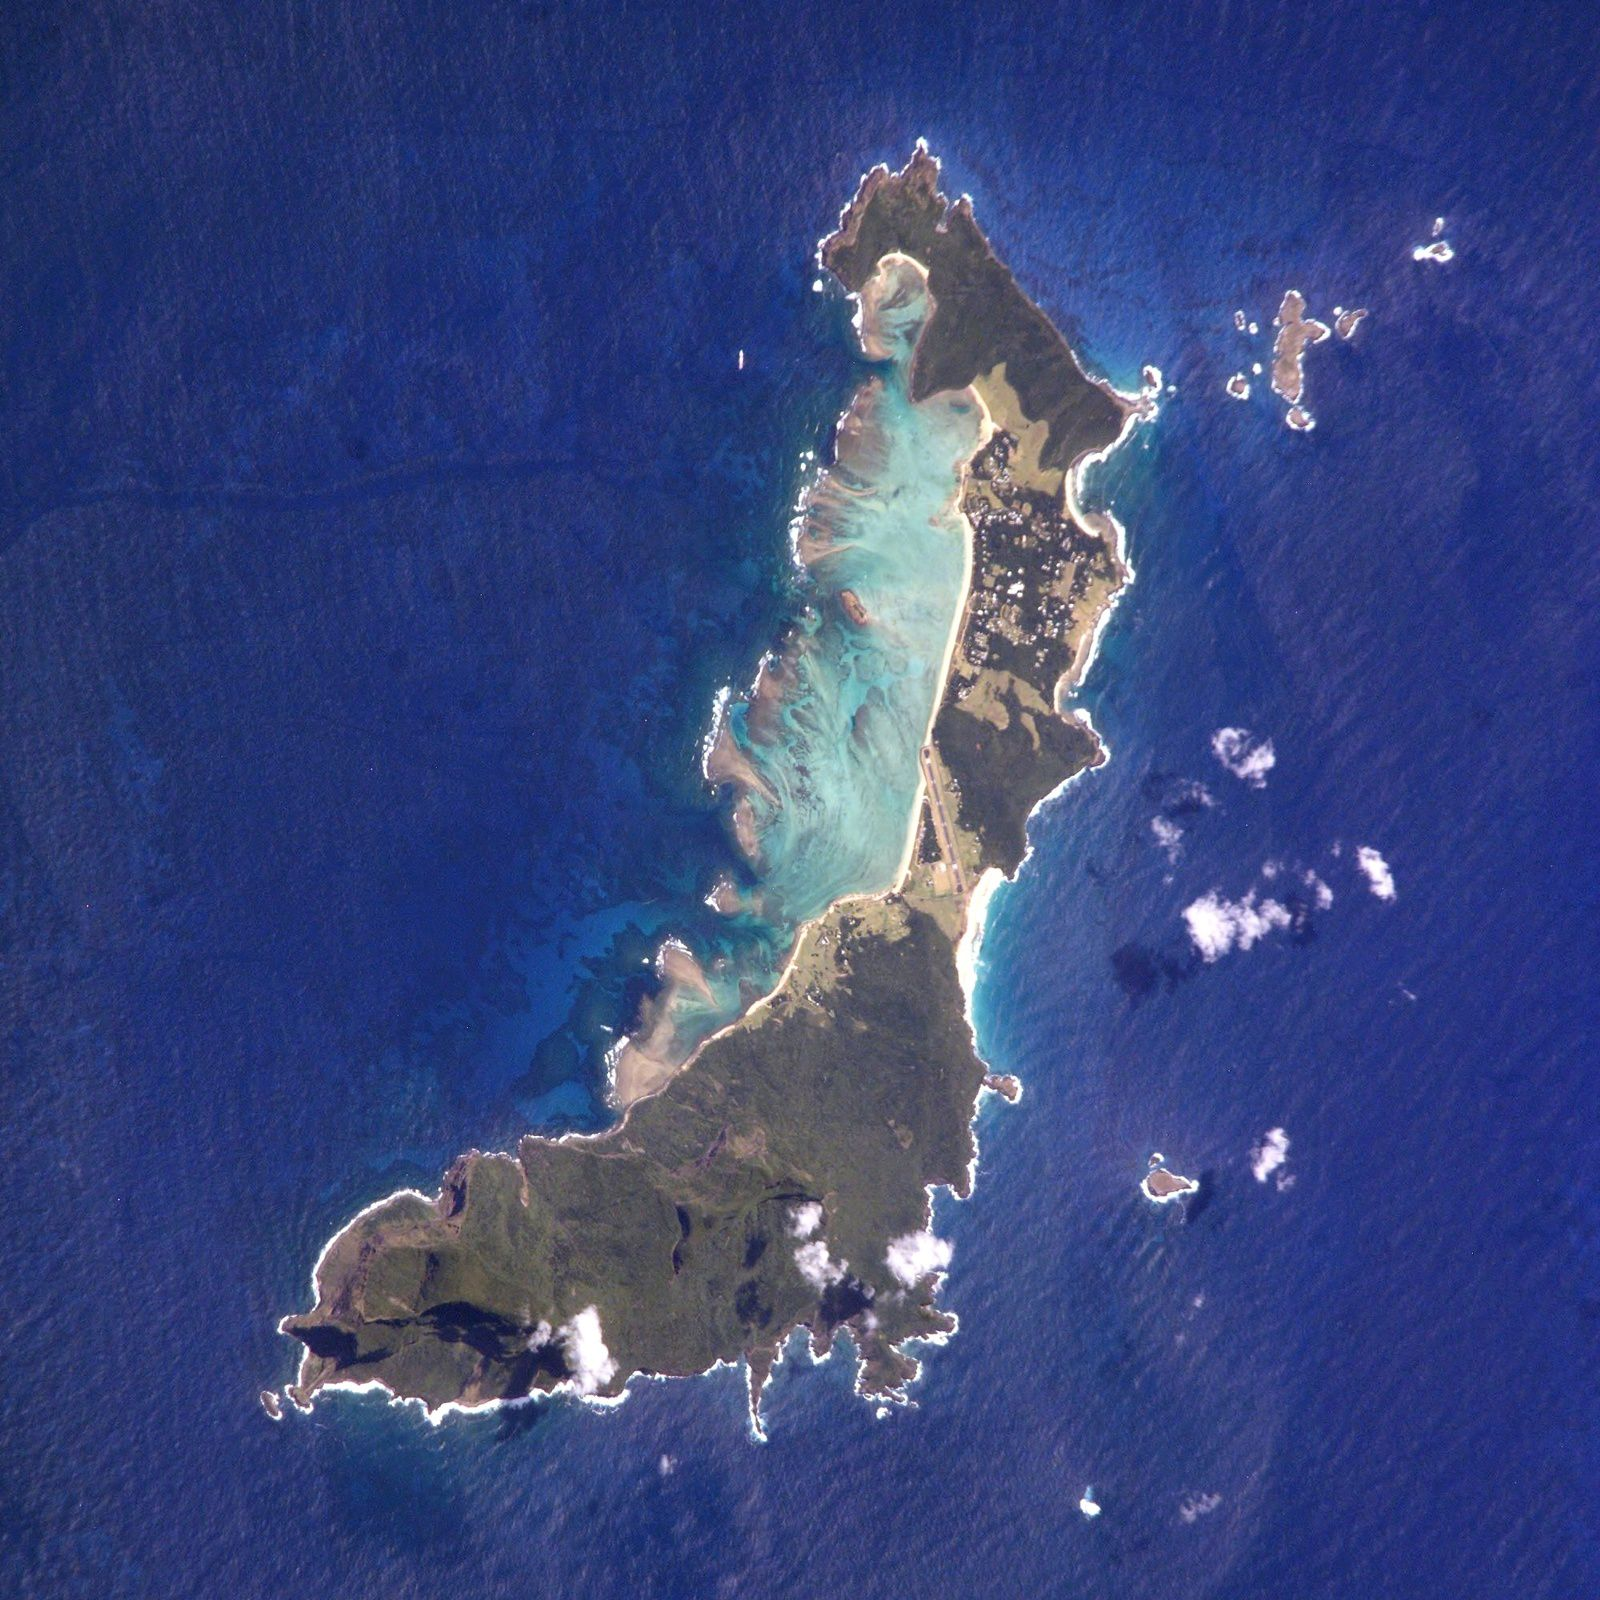 Lord Howe vu de la station spatiale - photo ISS006-E-5731 / NASA Johnson Space Center.